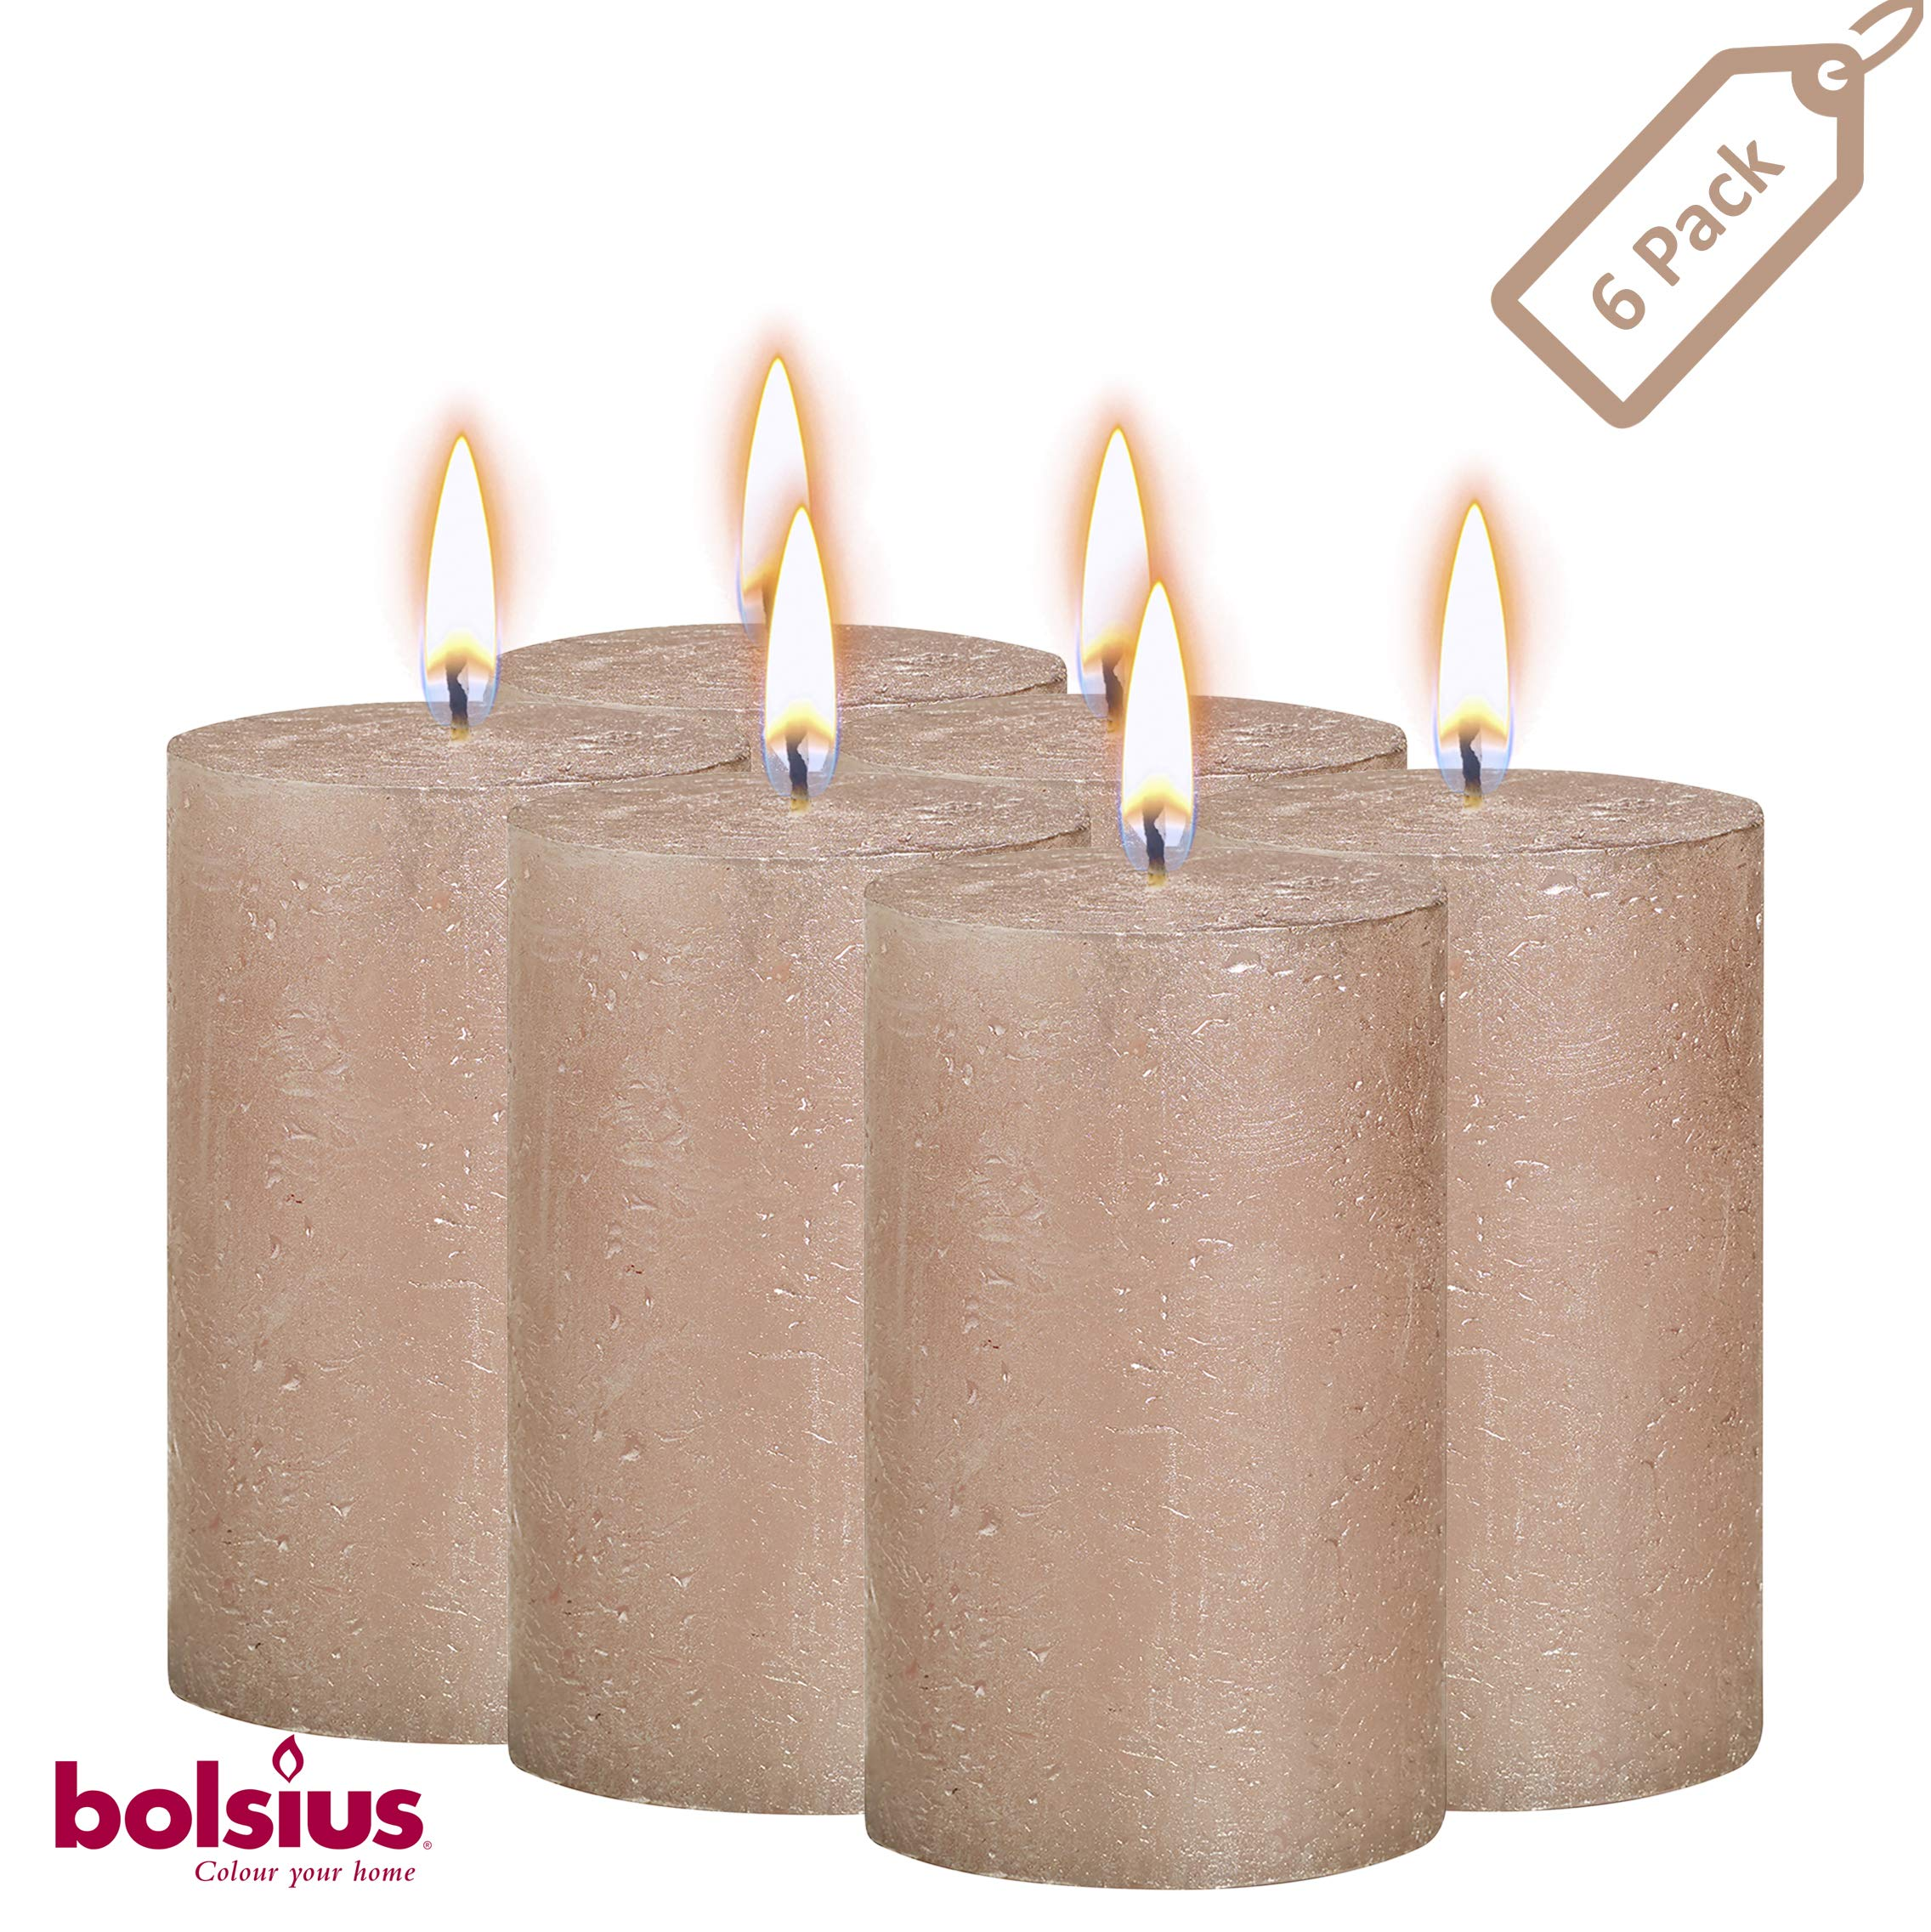 BOLSIUS Rustic Full Metallic Rose Gold Candles - Set of 6 Unscented Pillar Candles - Rose Gold Candles with a Full Metallic Coat - Slow Burning - Perfect Décor Candle - 130/68m 5 X 2.75 Inches